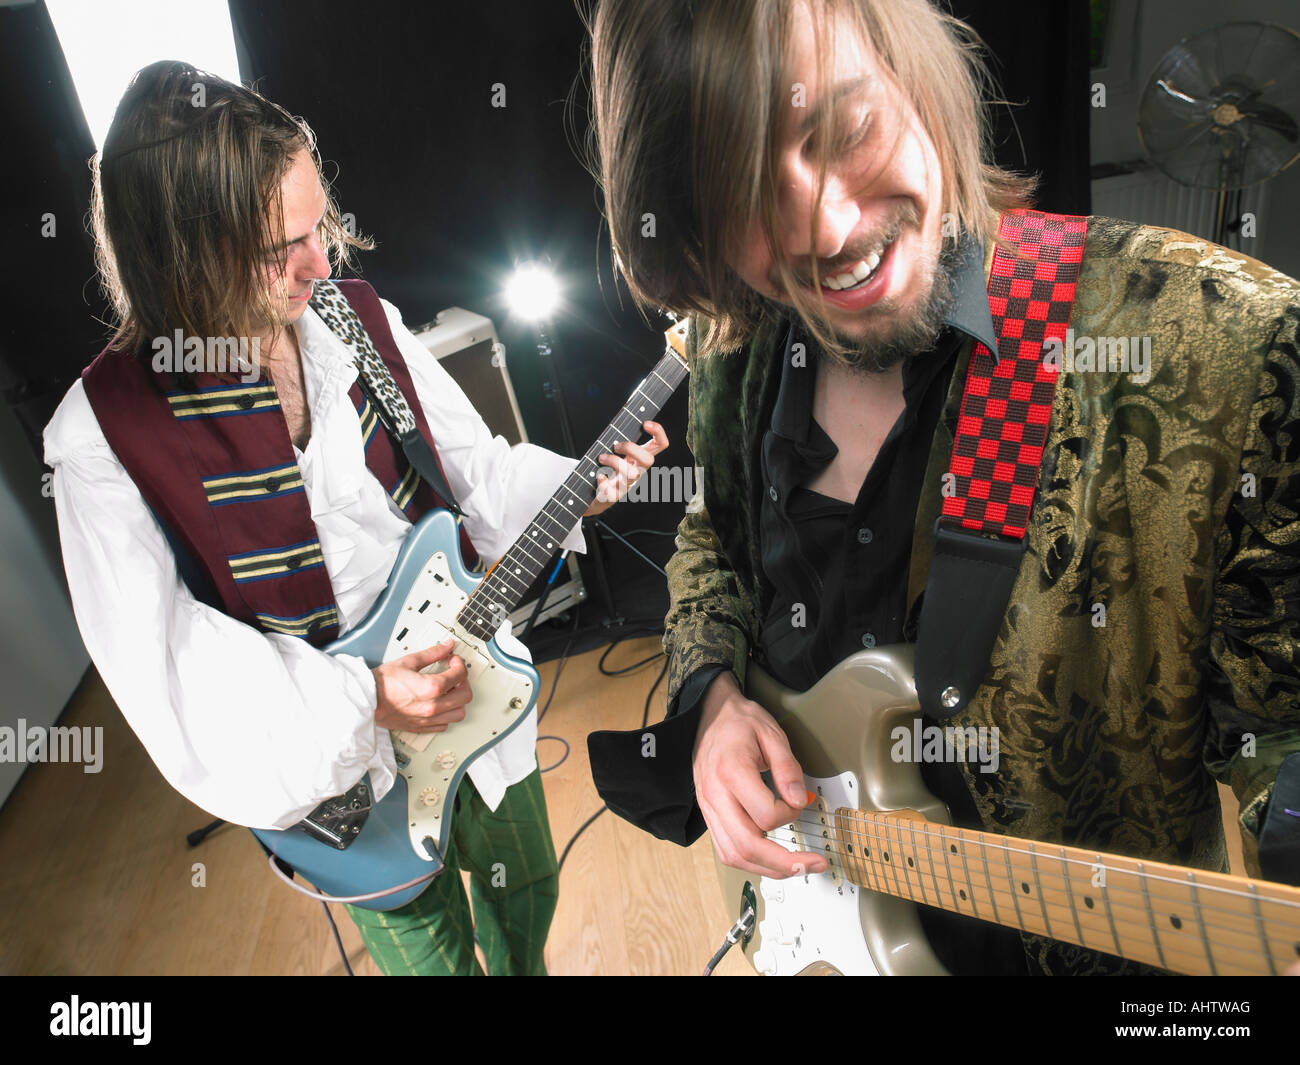 Two electric guitar players in studio. - Stock Image